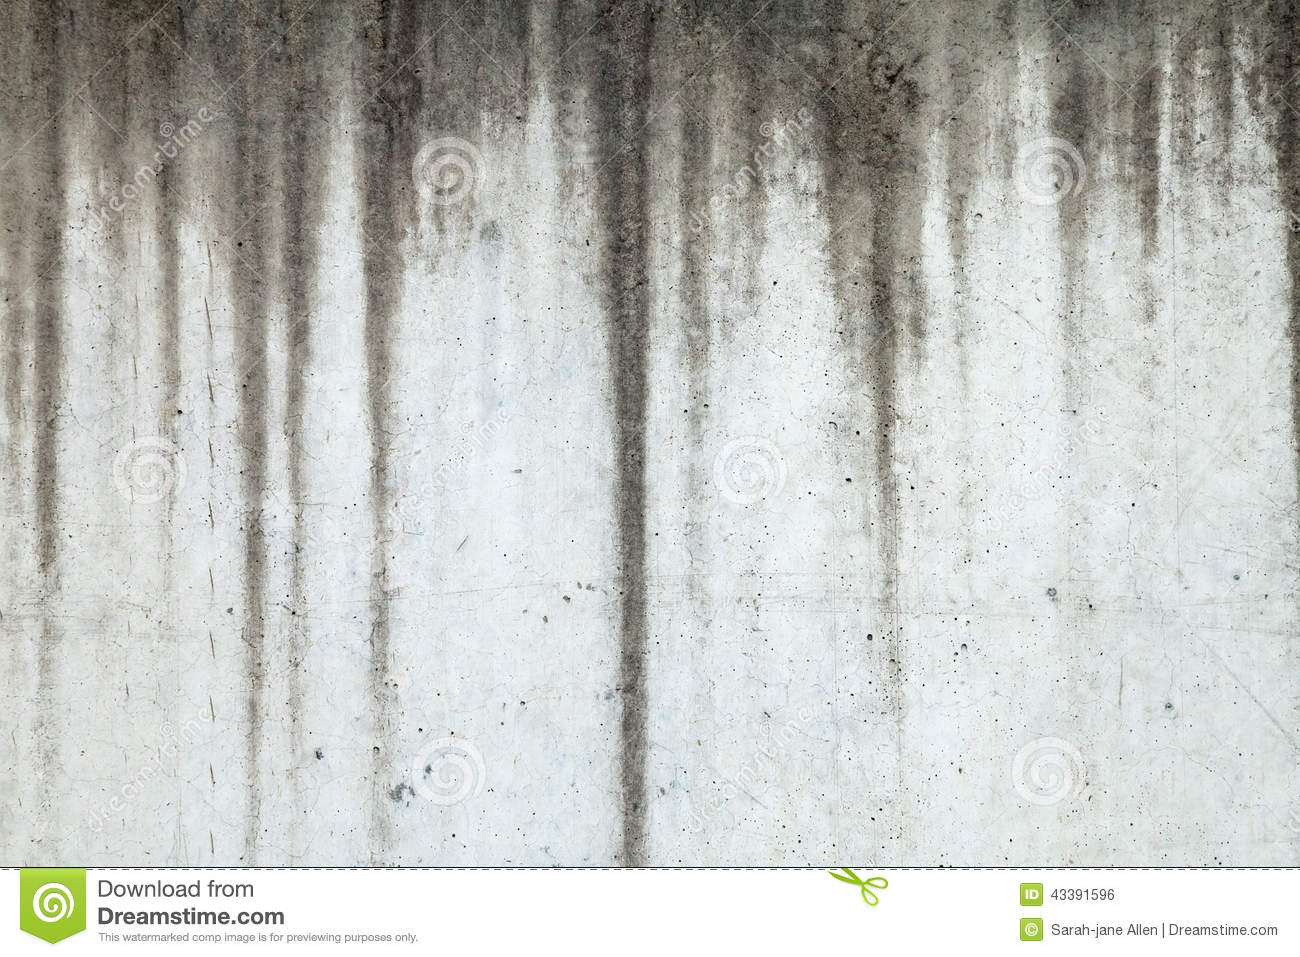 Texture of concrete wall with water marks running down for Removing dirt stains from concrete